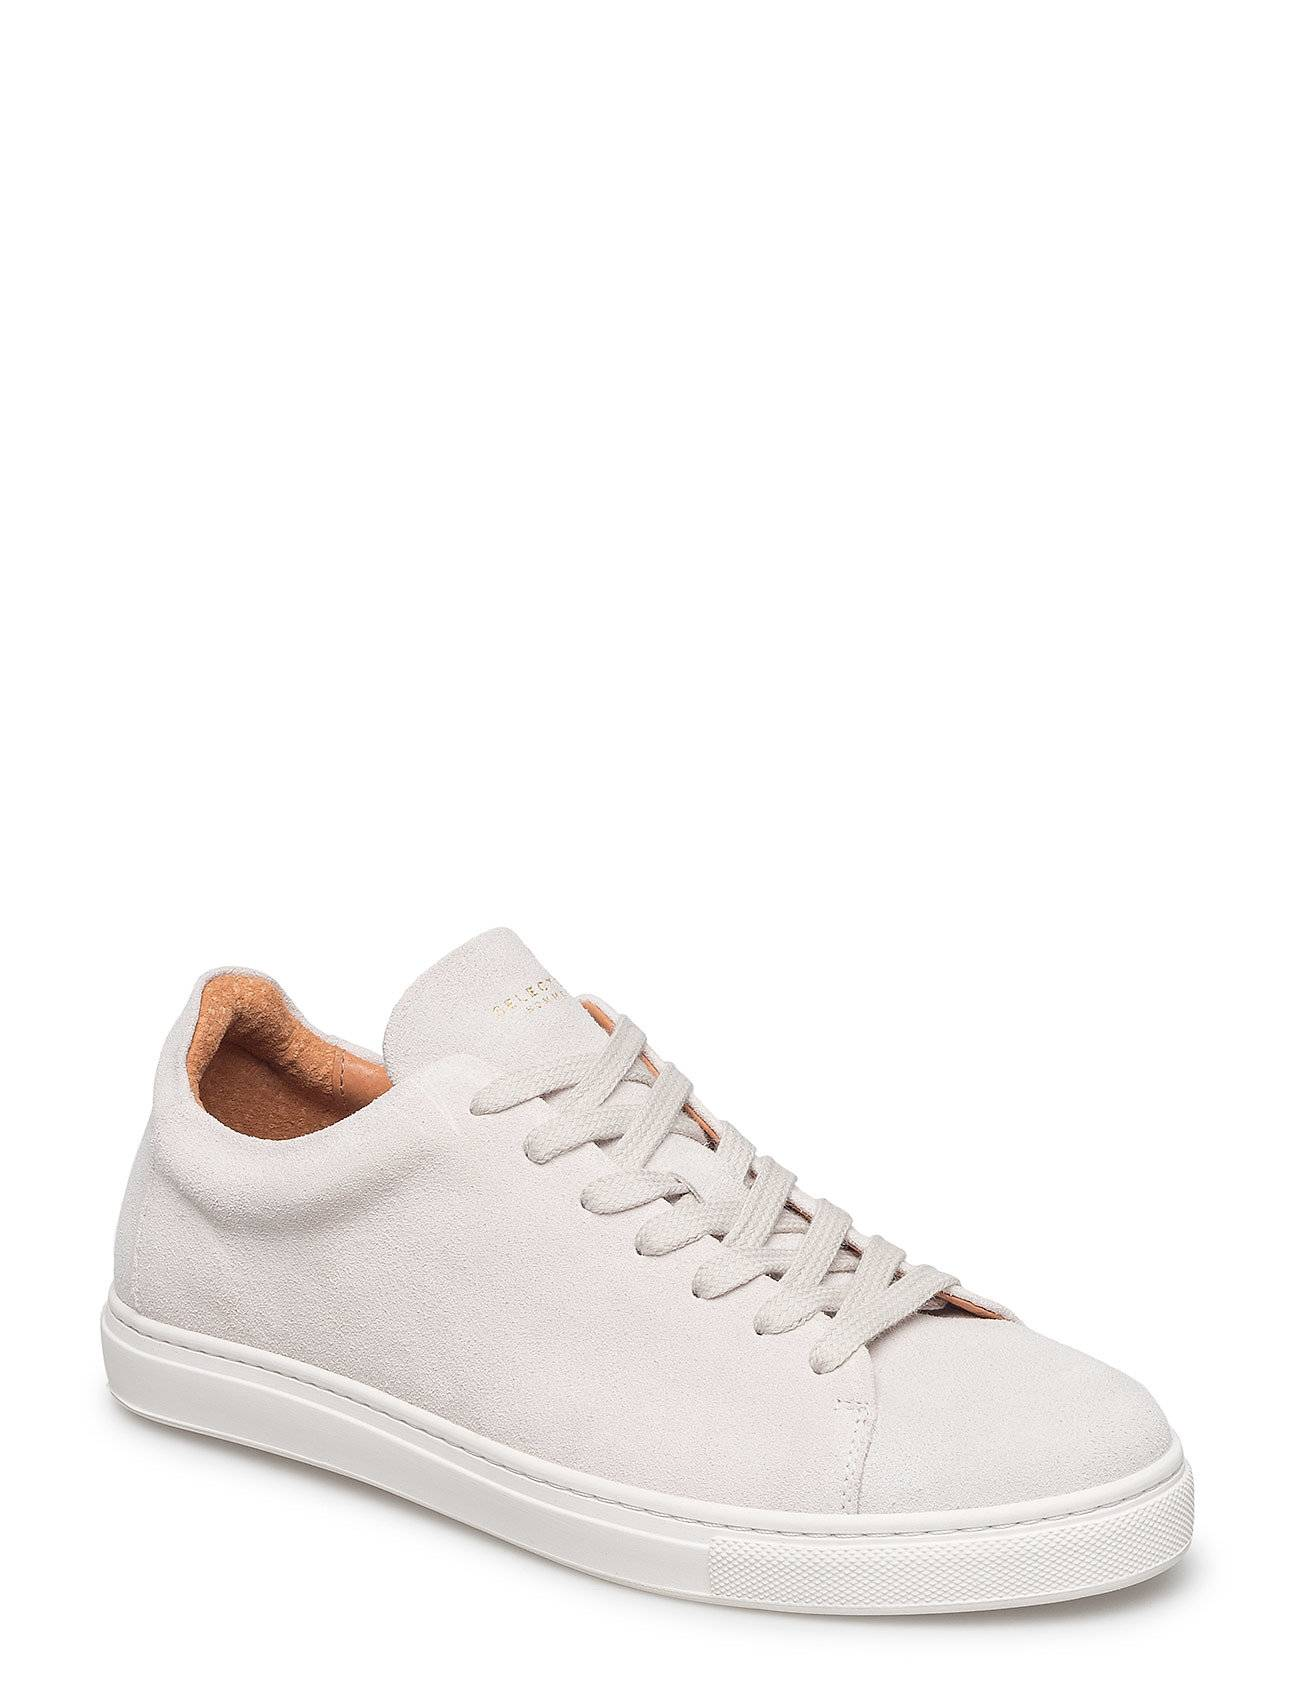 Selected Homme Shndavid Suede Sneaker New